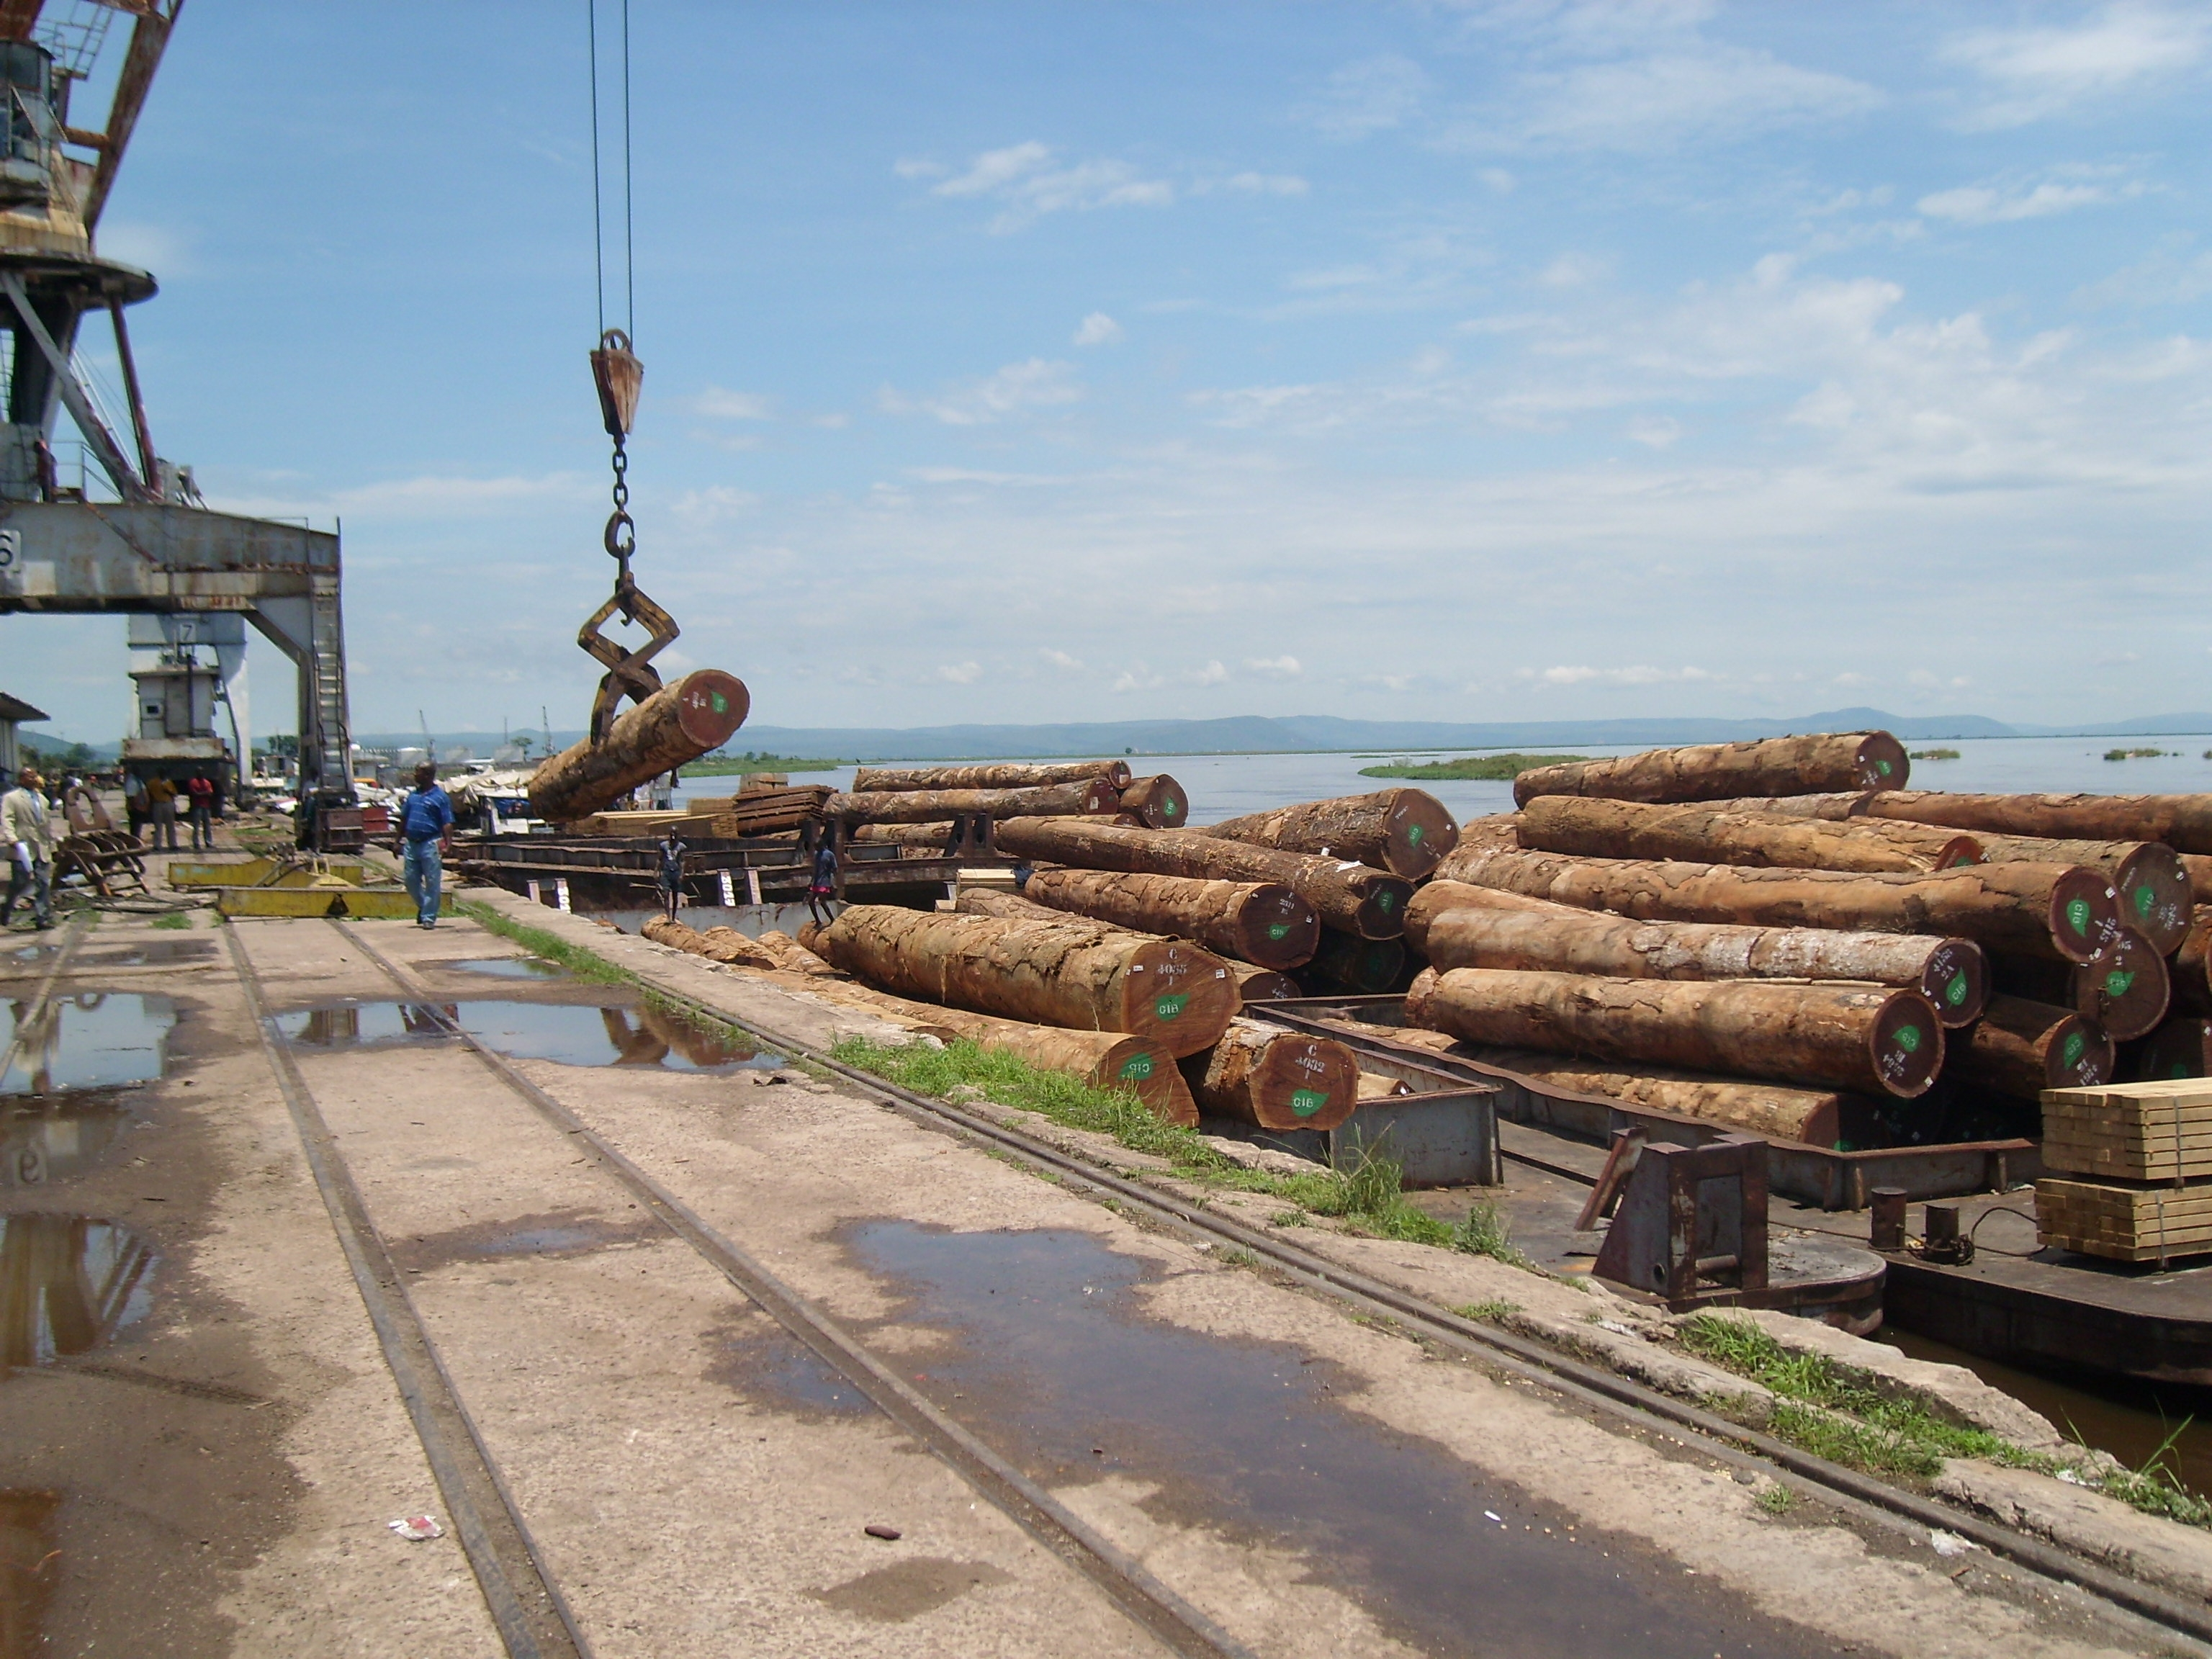 Timber destined for export at Brazzaville river port. The forestry sector is Congo's second biggest earner of foreign currency after oil and has given employment to some 10,000 people over the past decade, making it the country's second biggest employer